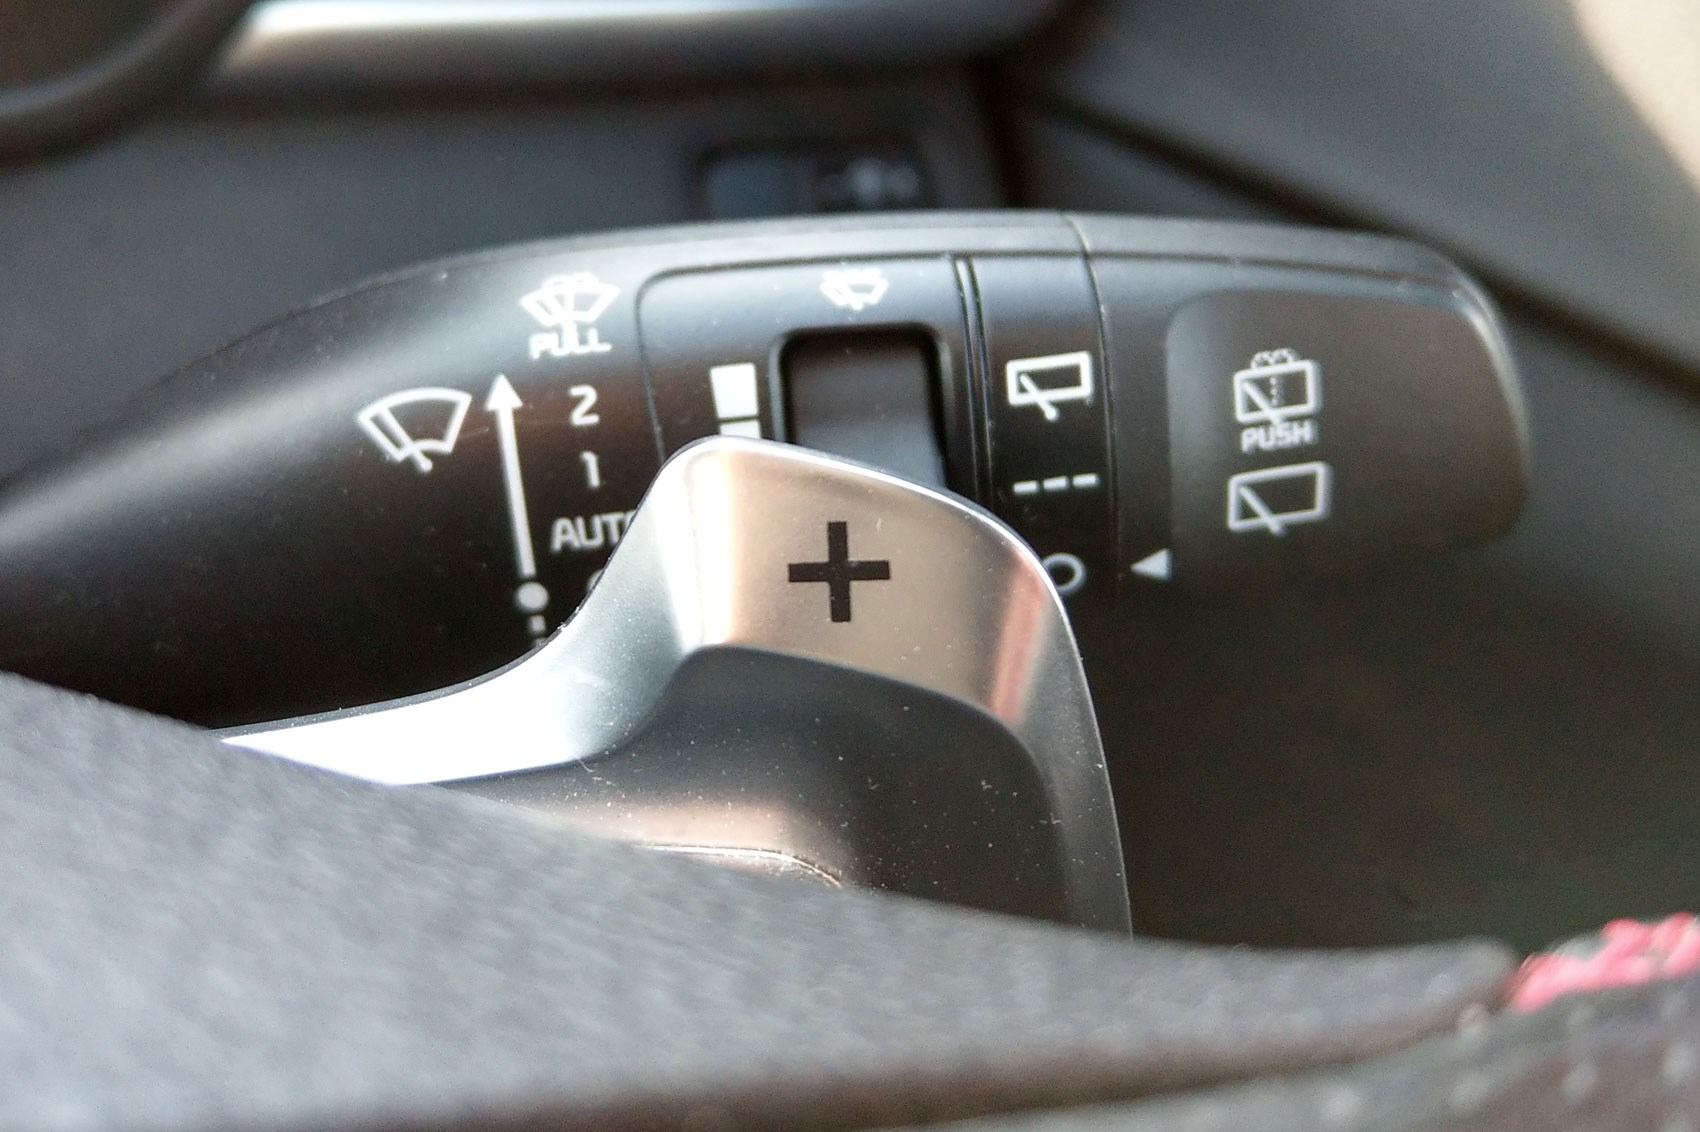 The paddleshifts behind the steering wheel on the Kia Optima Sportswagon feel incredibly cheap